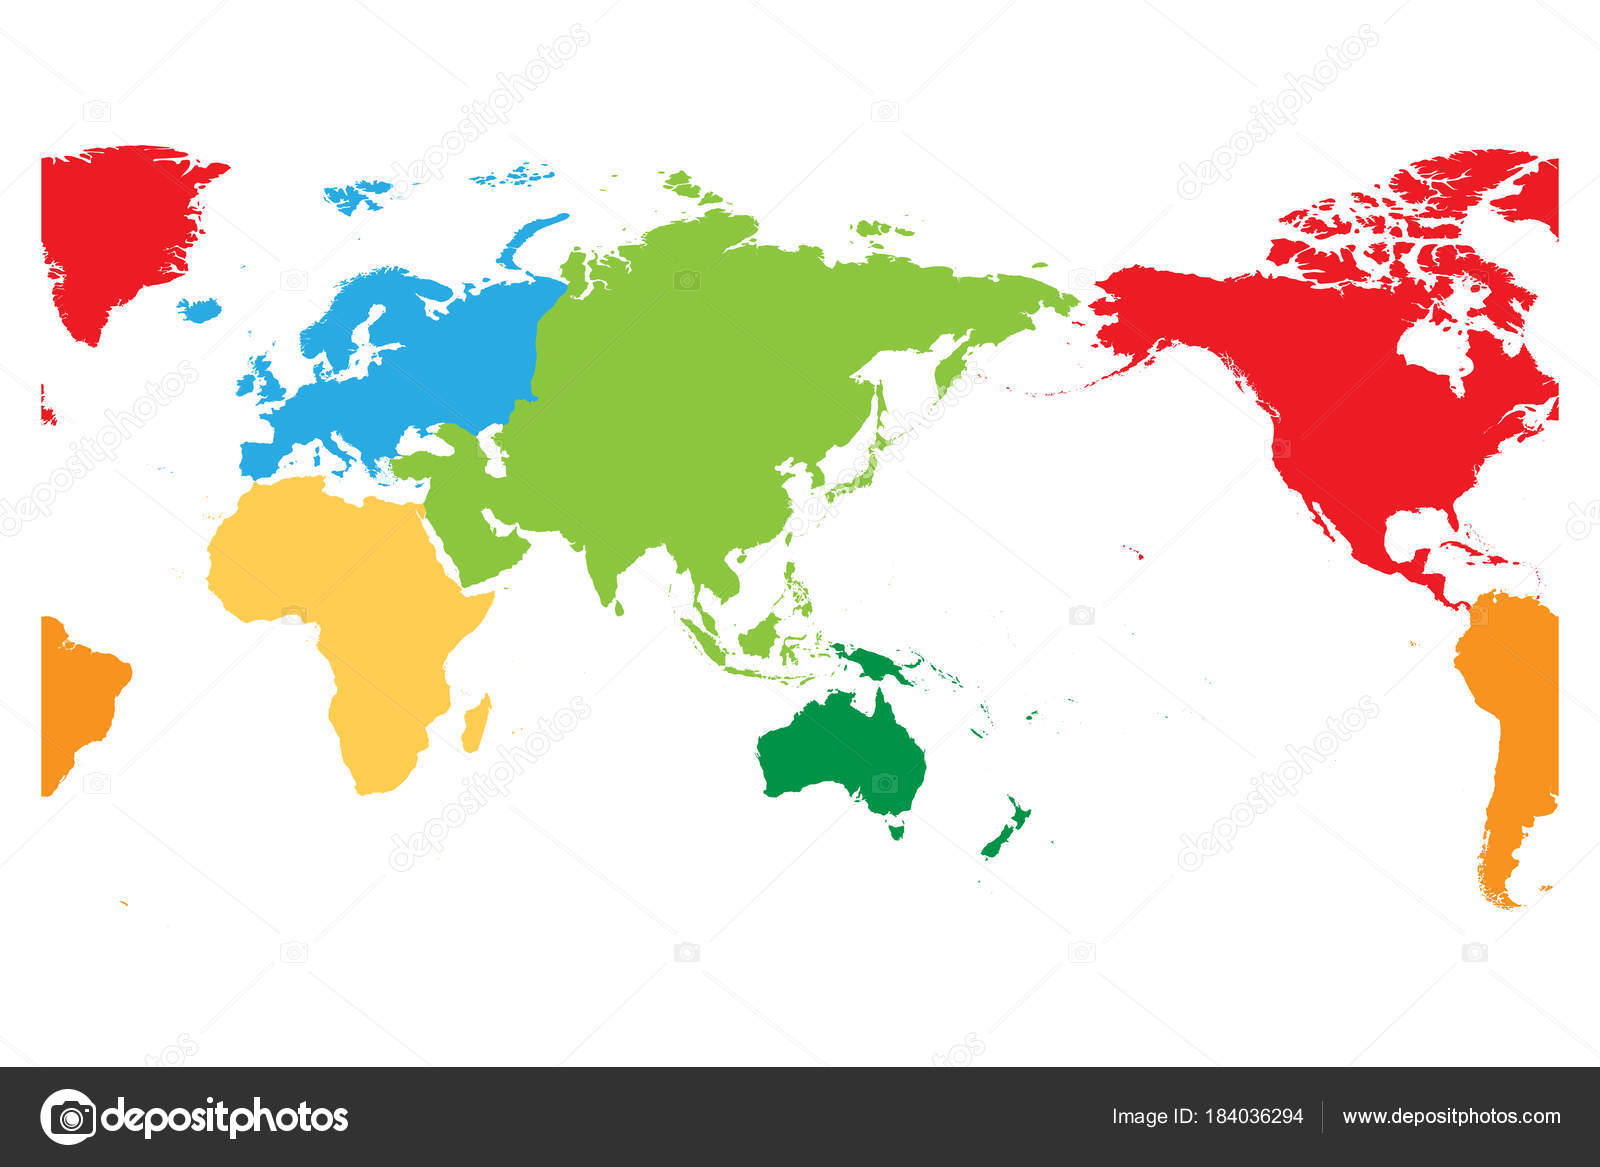 Simple Map Of Asia And Australia.World Map Divided Into Six Continents Asia And Australia